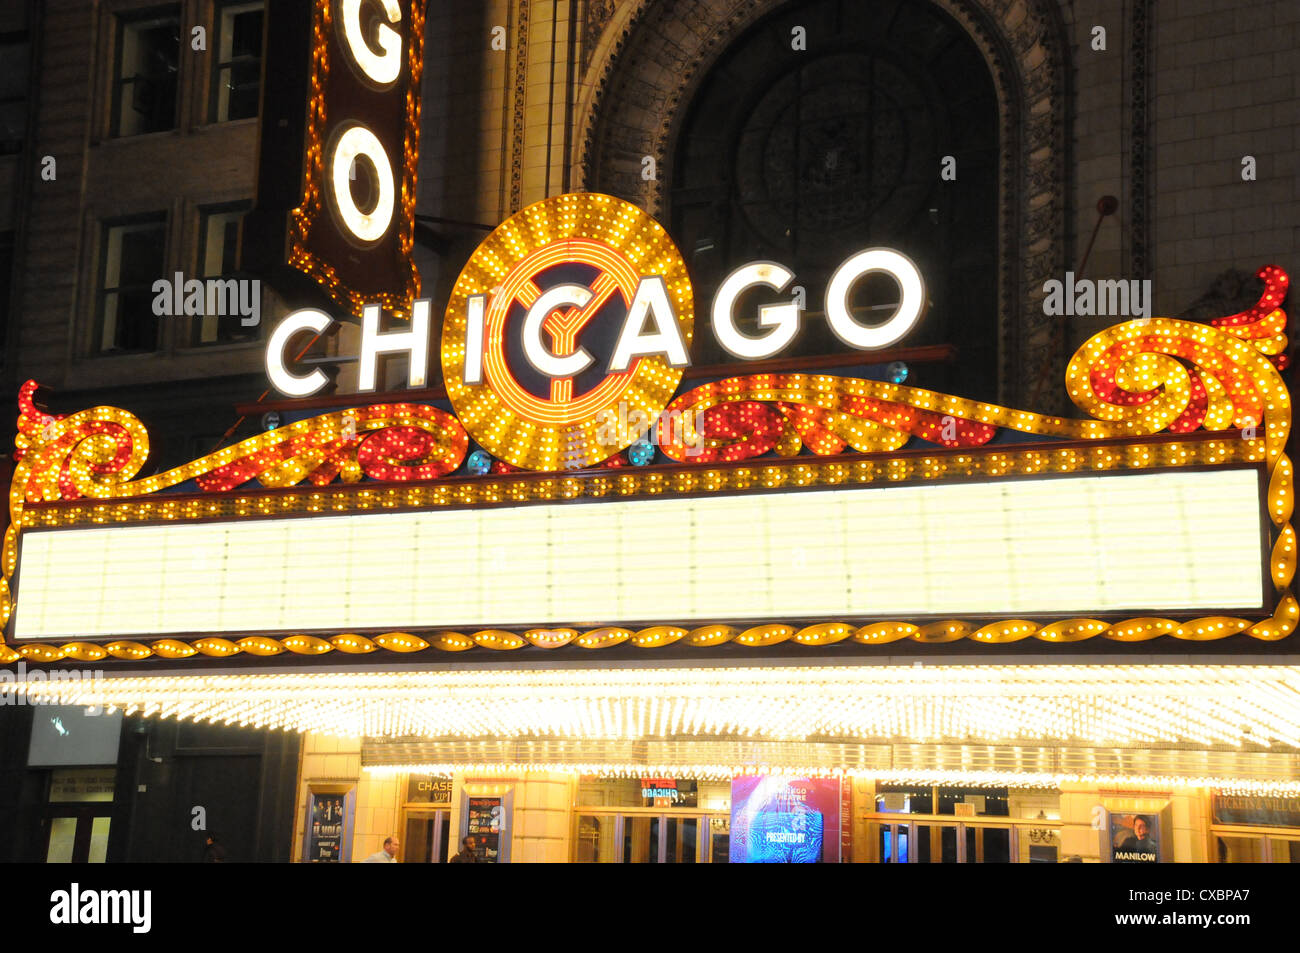 CHICAGO THEATRE MARQUEE,STATE STREET,CHICAGO,ILLINOIS - Stock Image